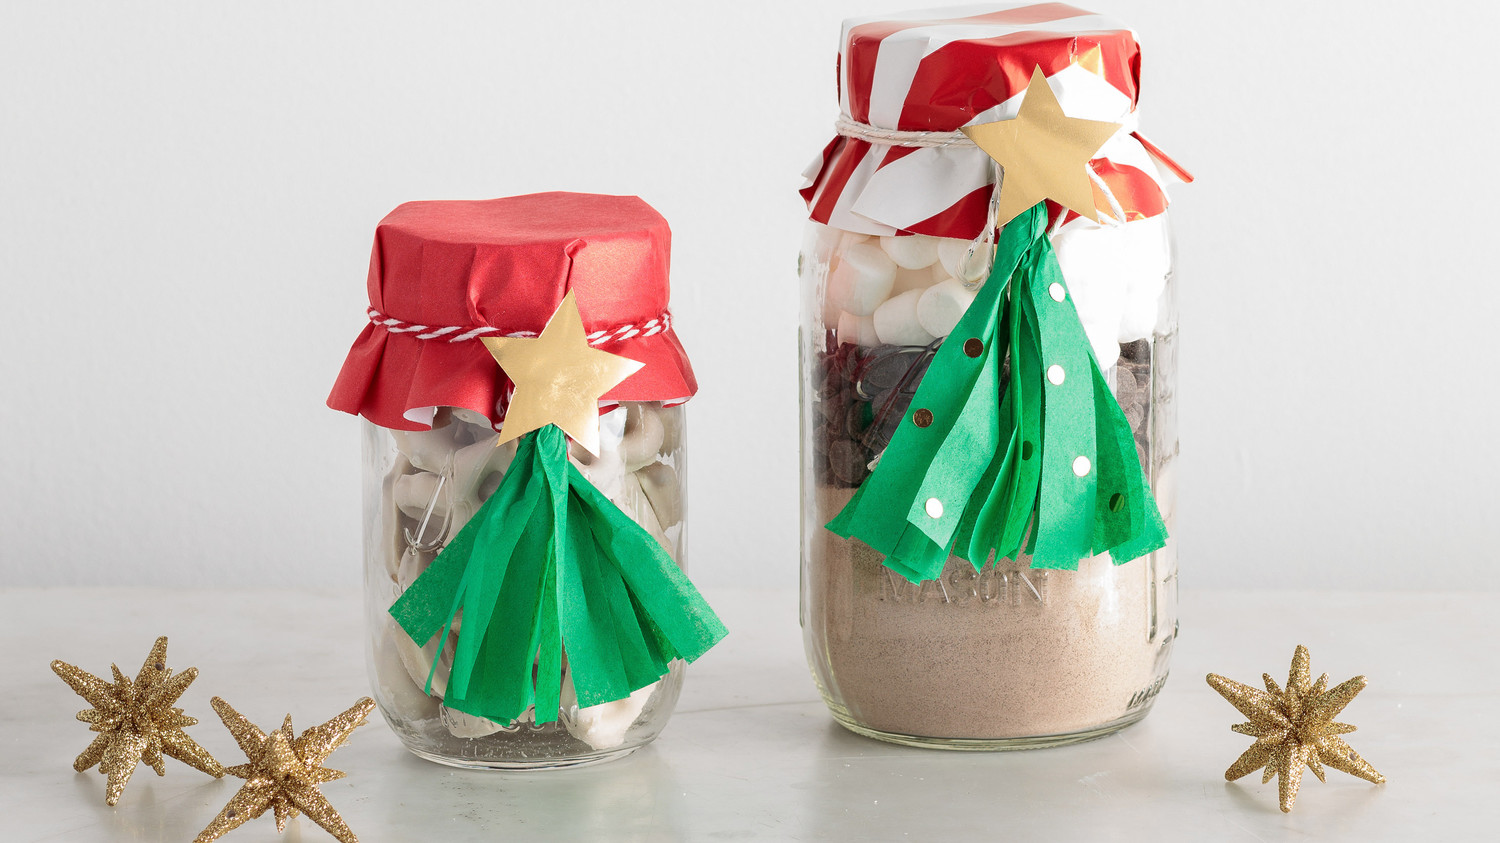 How To Make Christmas Tree Toppers For Gifts In A Jar